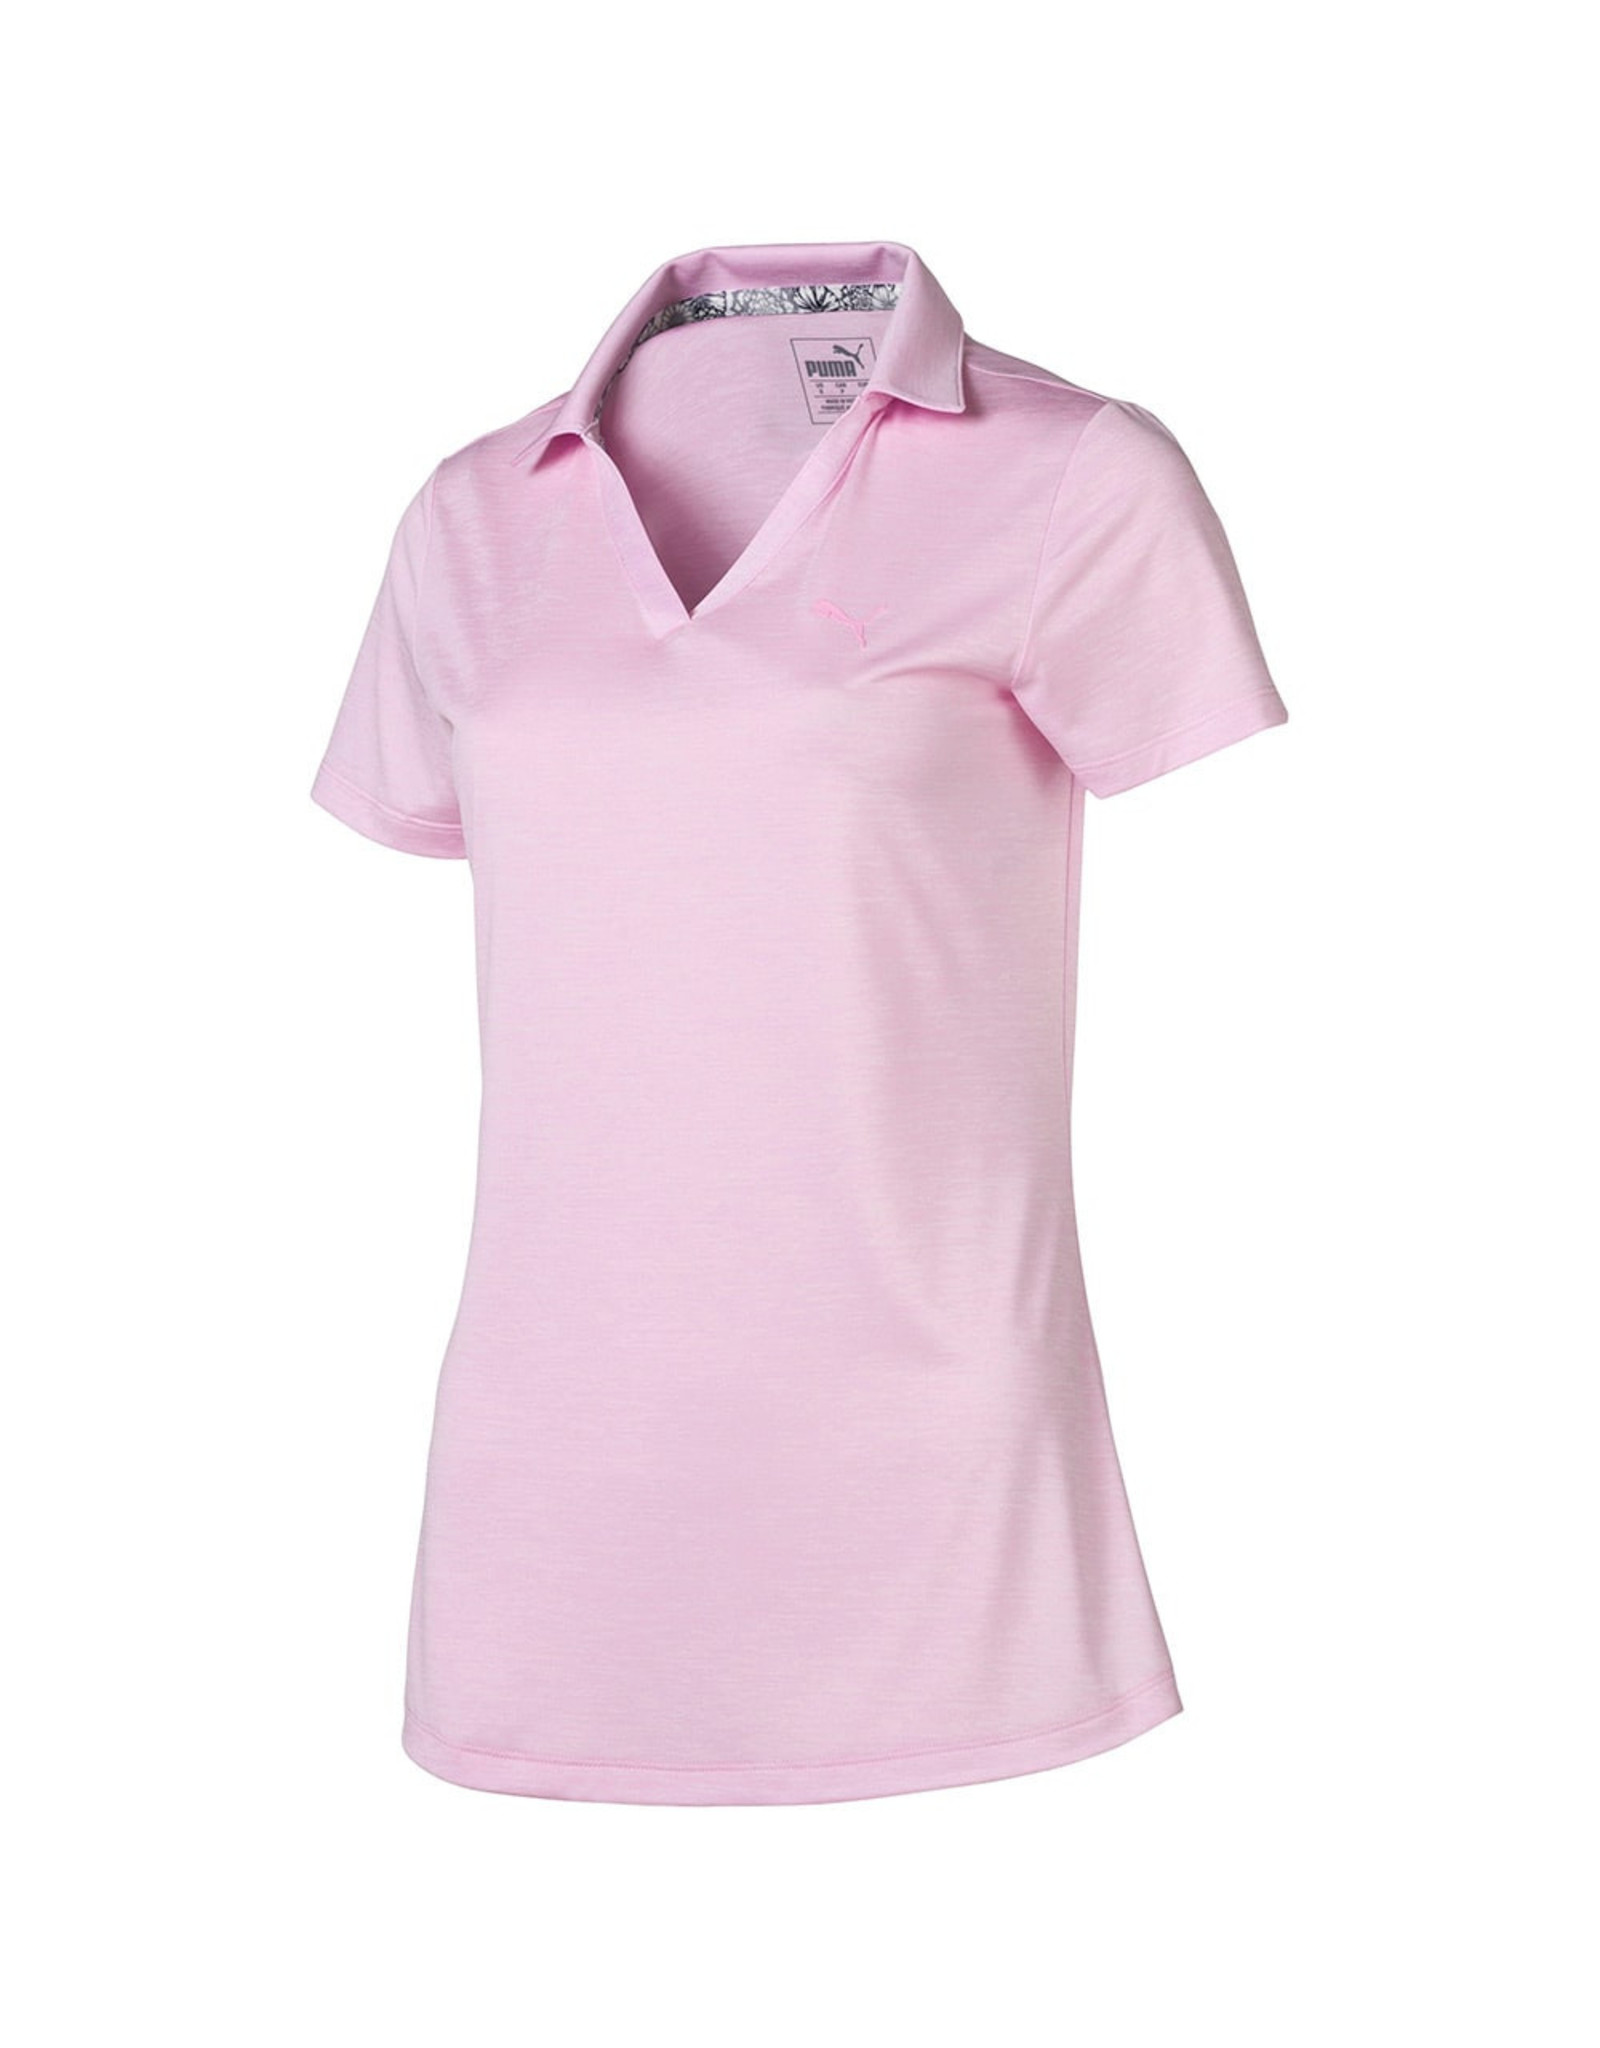 Puma Golf Puma Women's Super Soft Polo